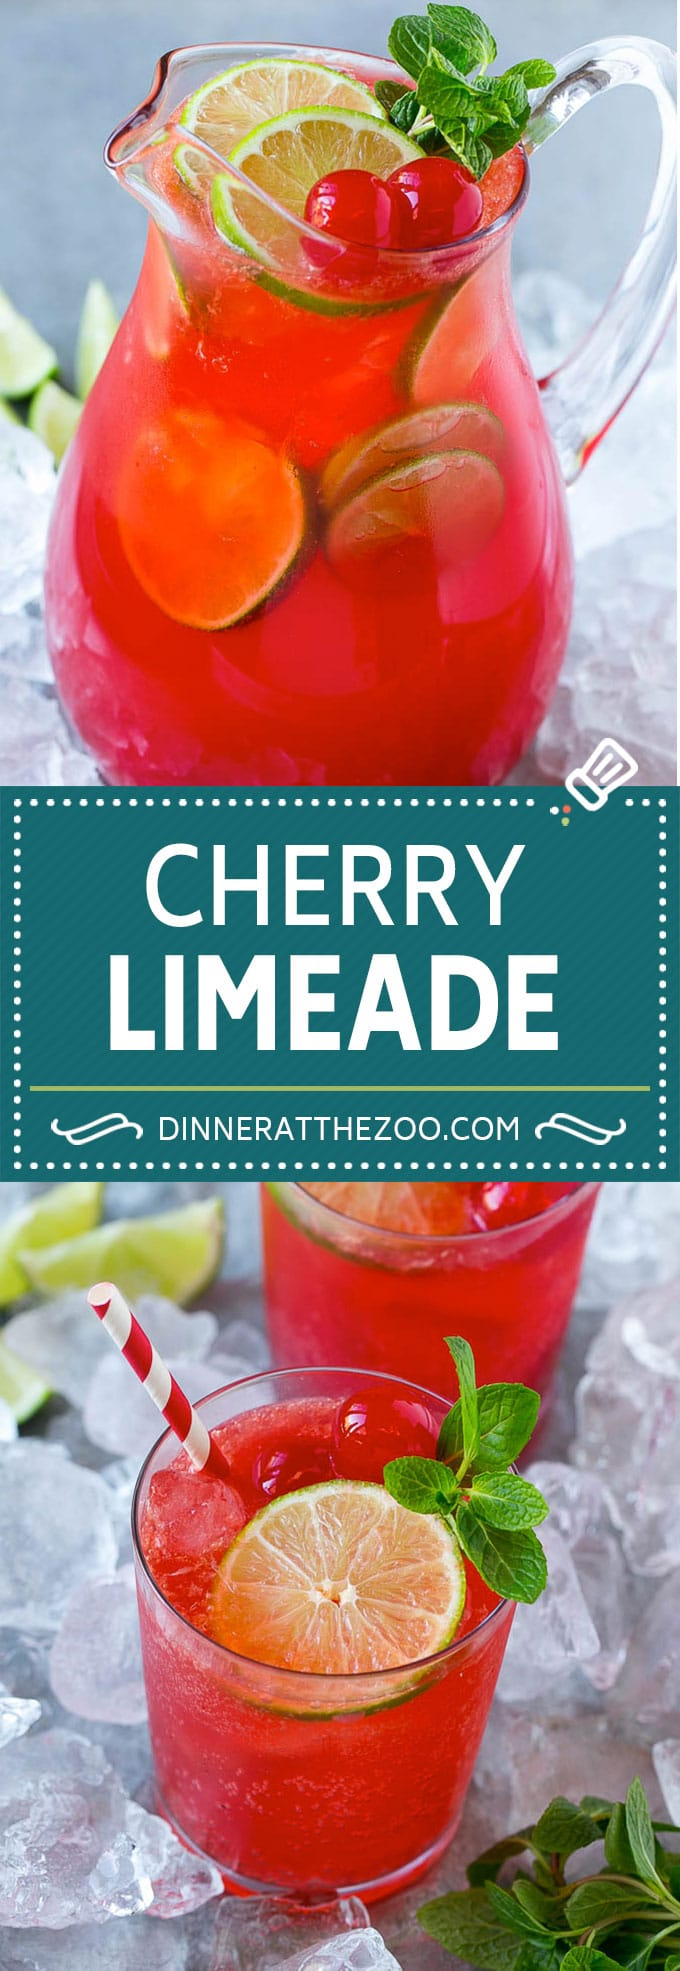 Cherry Limeade Recipe | Sonic Cherry Limeade | Limeade Recipe